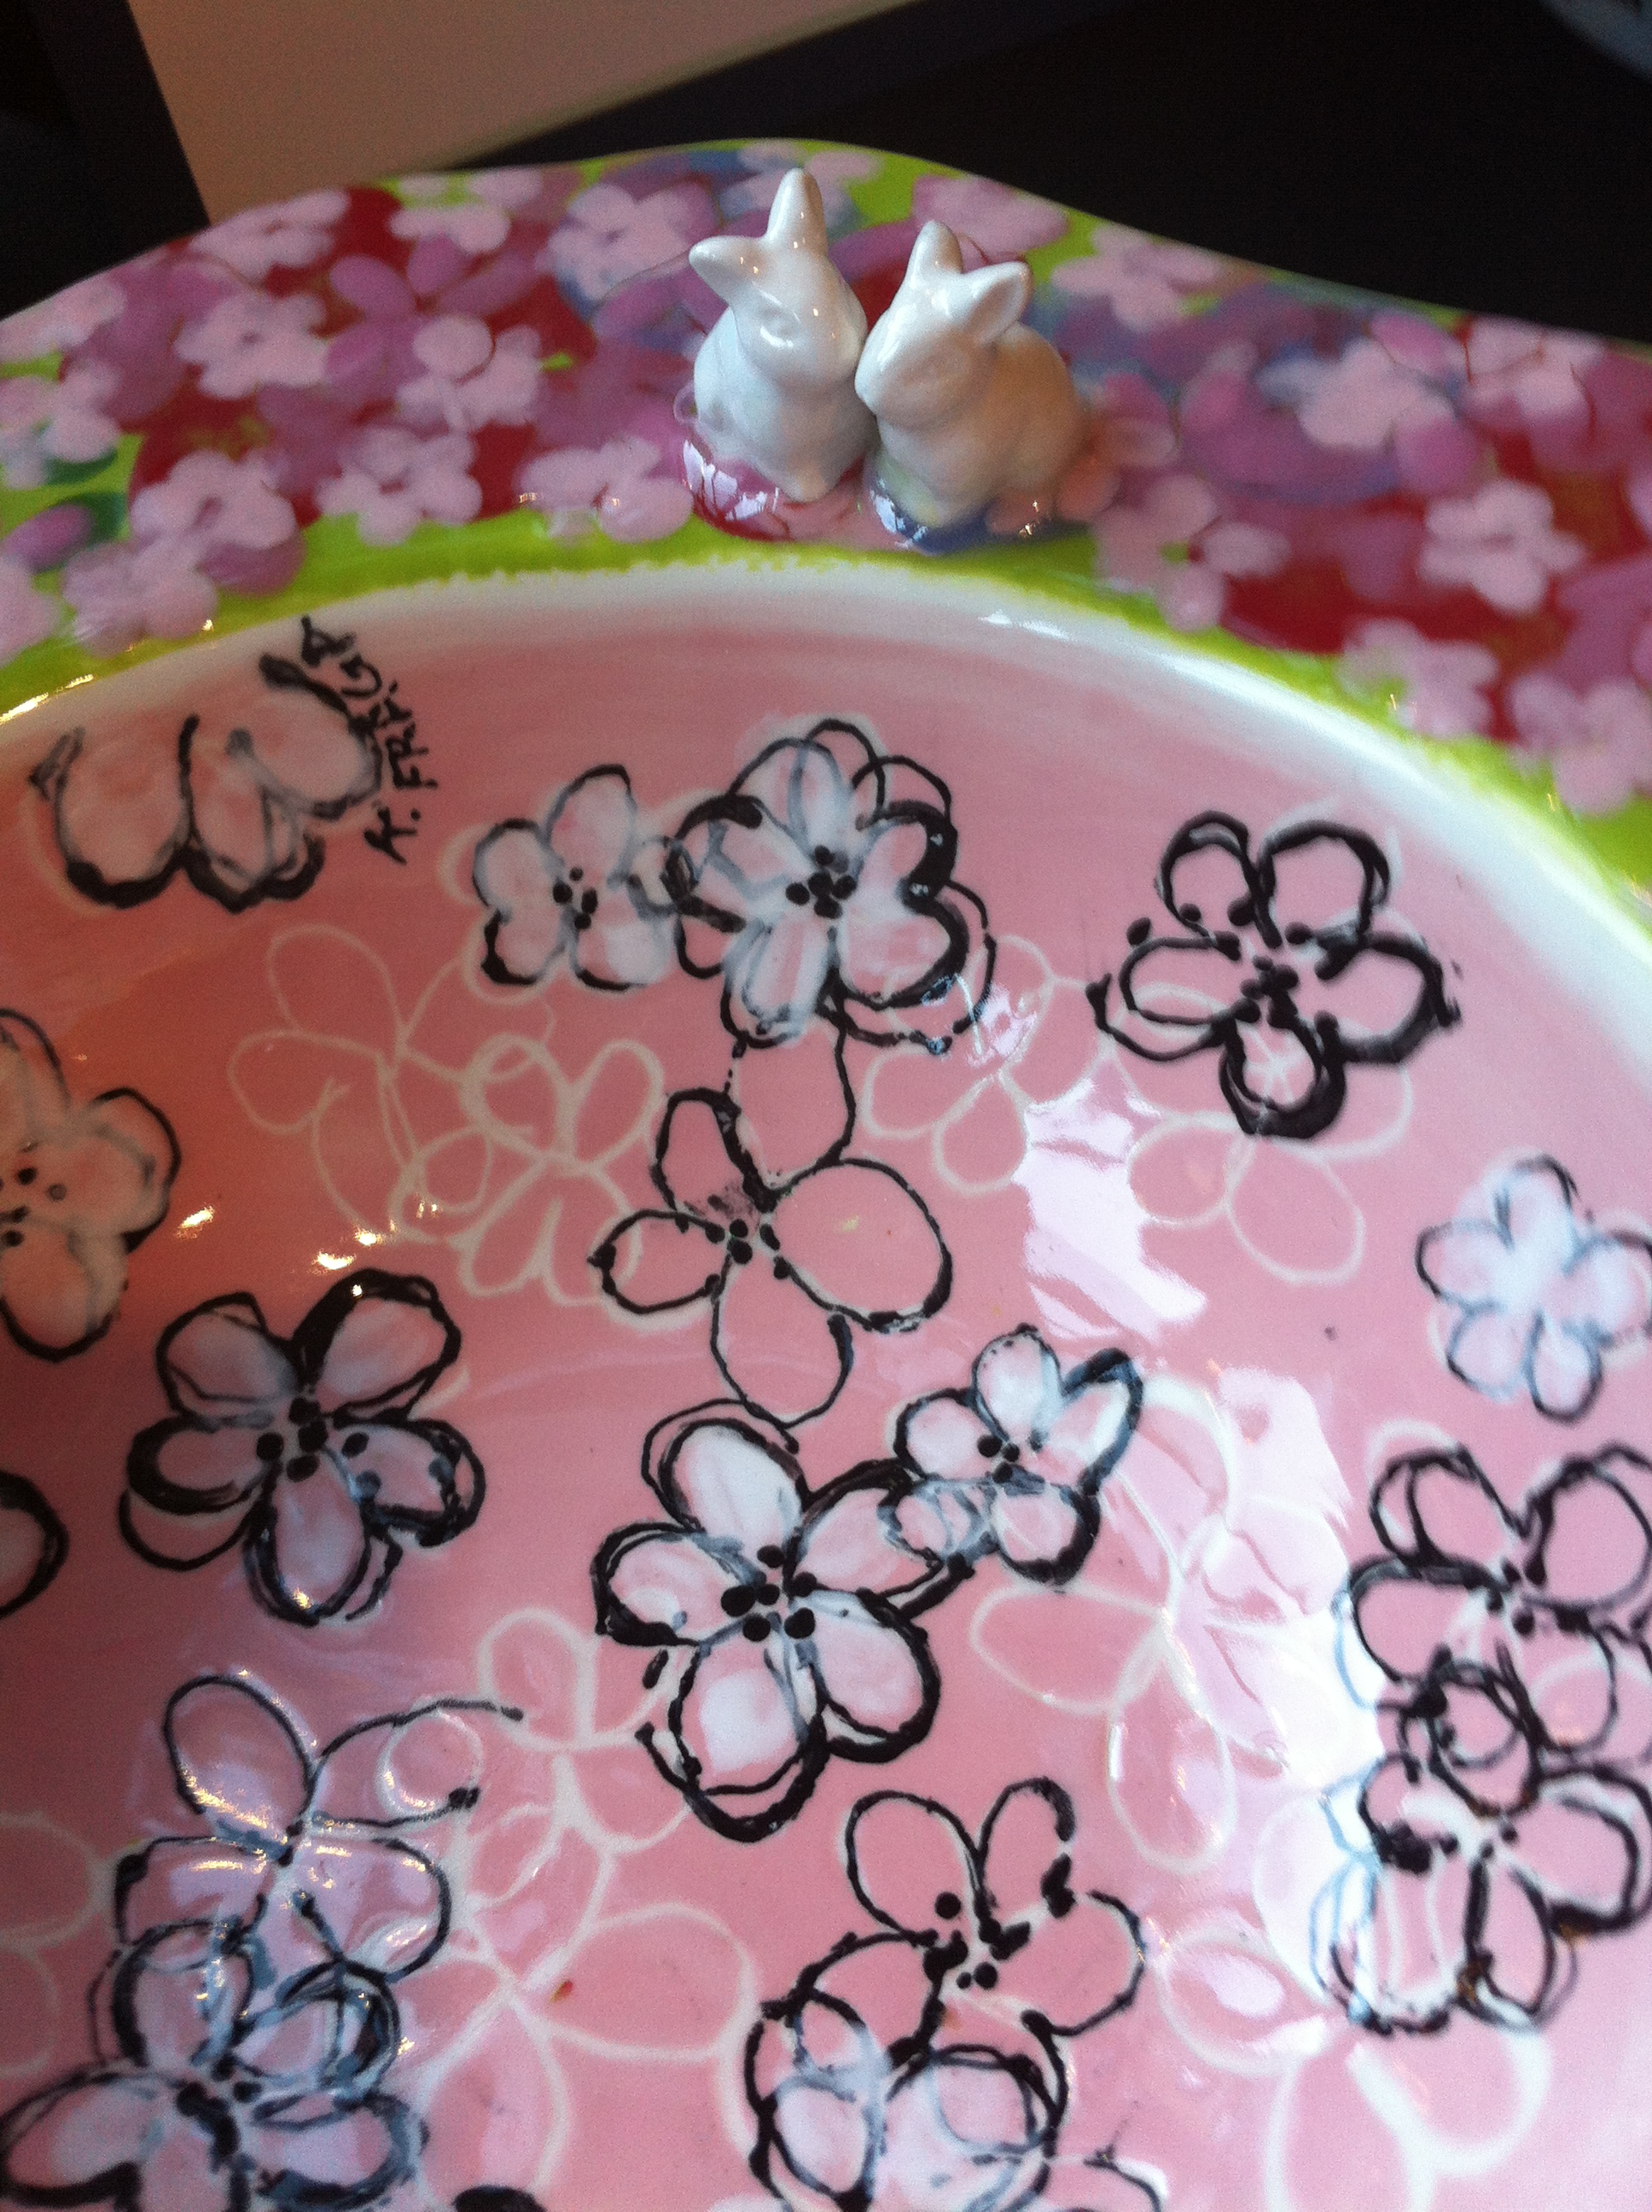 The Bunny Bowl - Detail